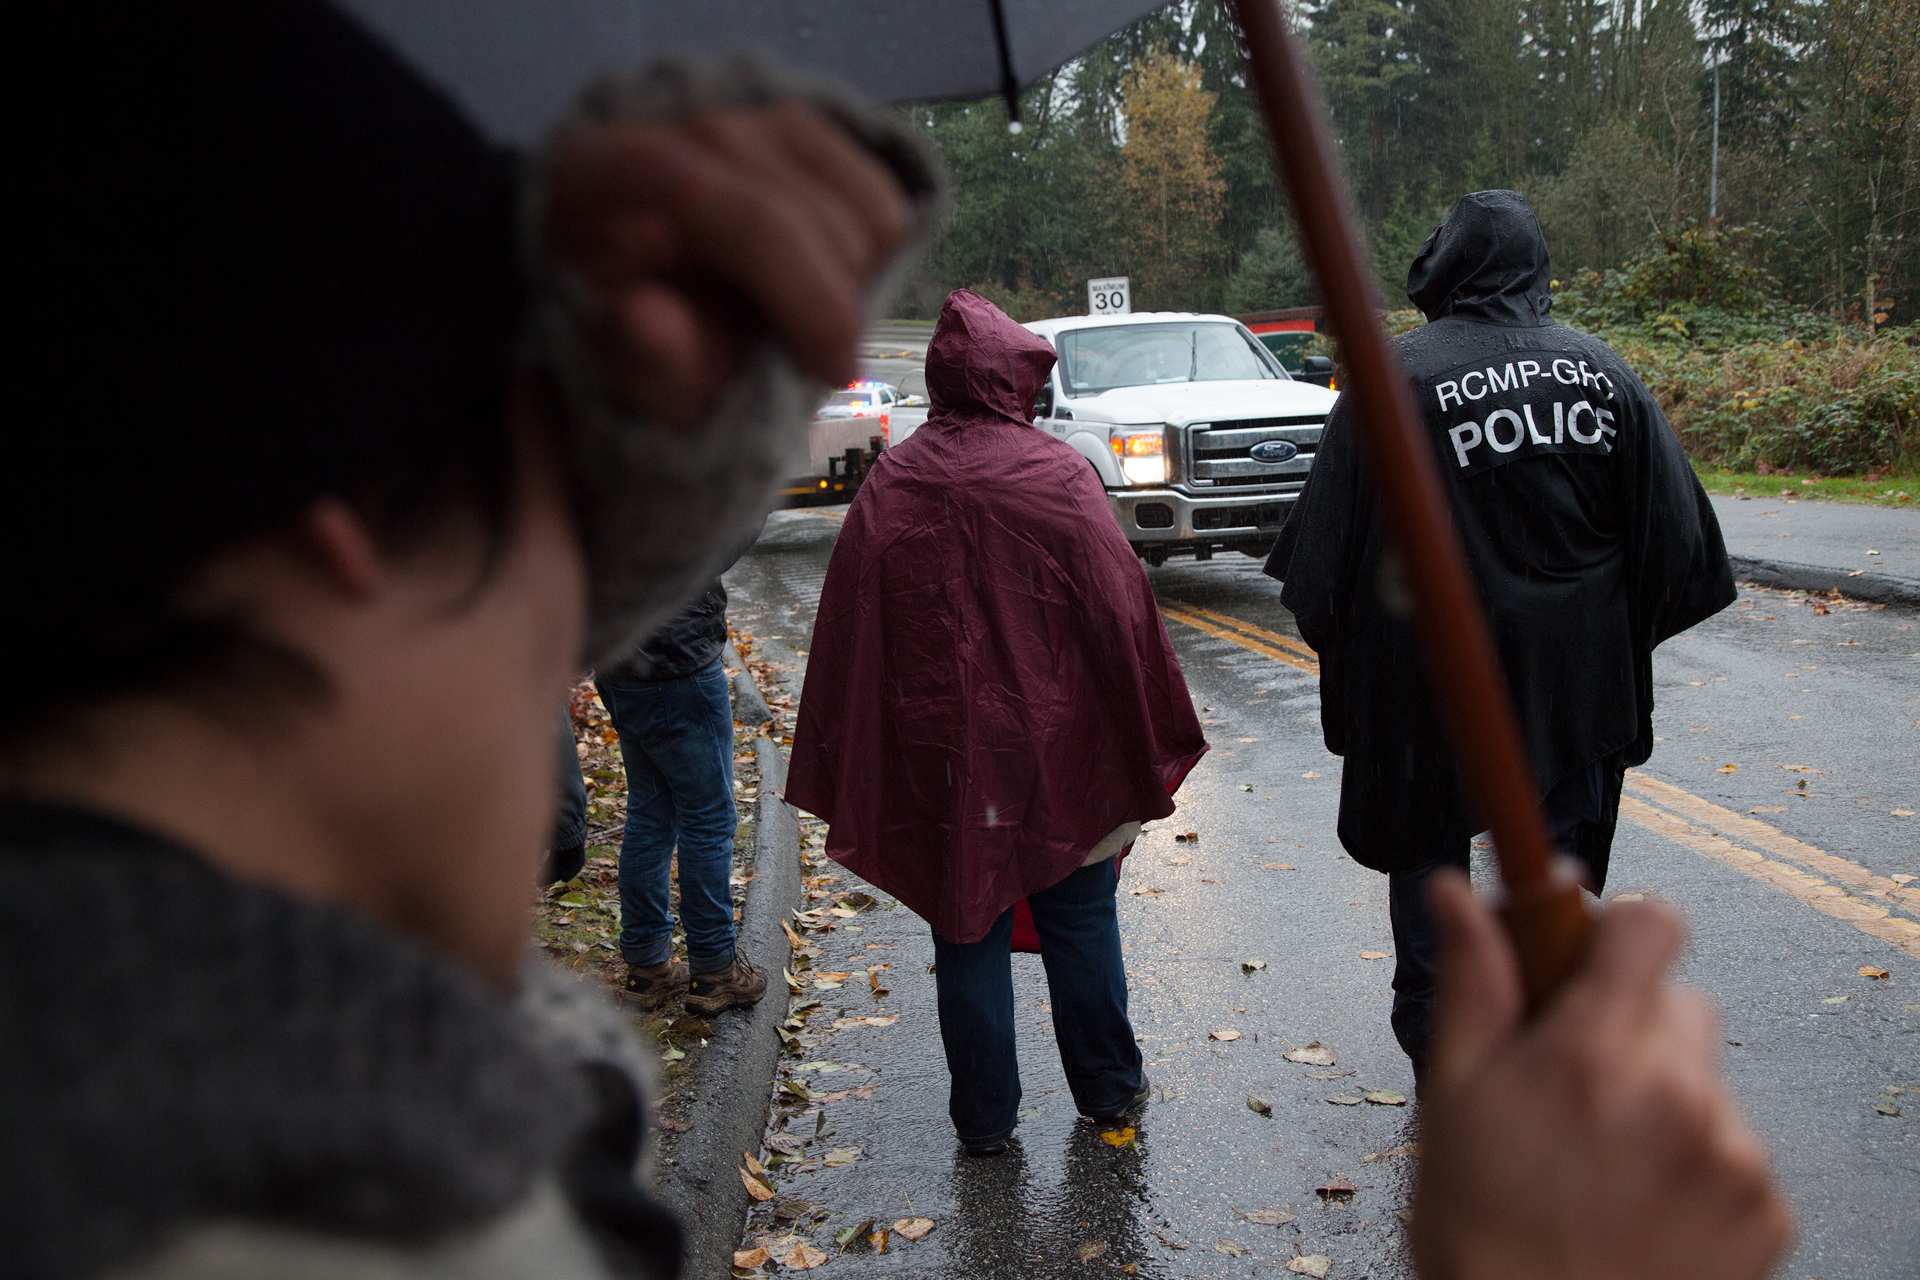 A protestor has a sigh of relief as Kinder Morgan trucks turn around after protestors blocked the road to the borehole sites.